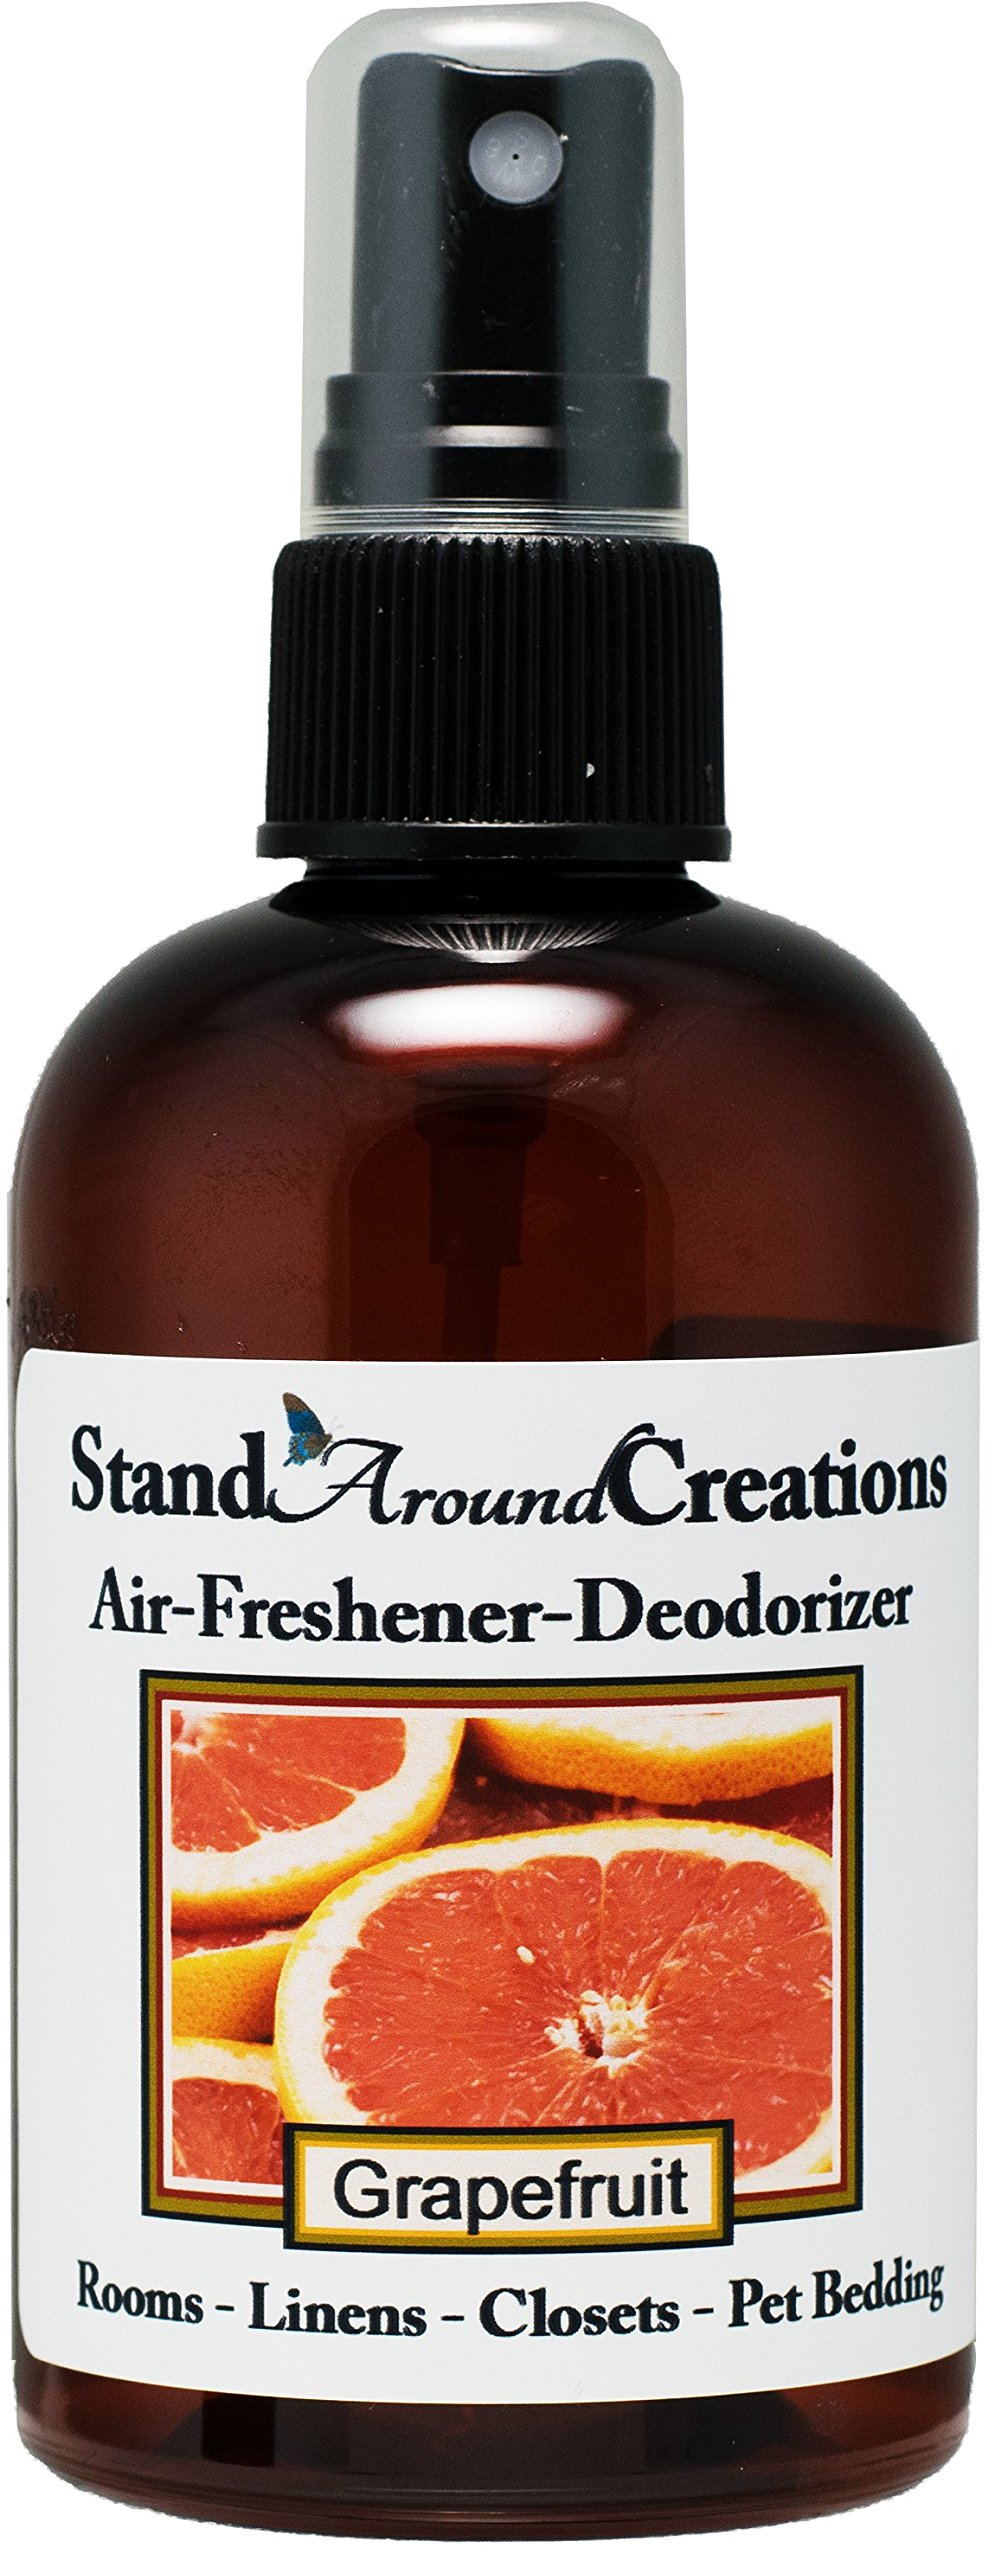 Concentrated Spray For Room / Linen / Room Deodorizer / Air Freshener - 4 fl oz - Grapefruit: A true-to-life blend of ripe, tangy grapefruit a exotic fruit that is citrusy and sweet.